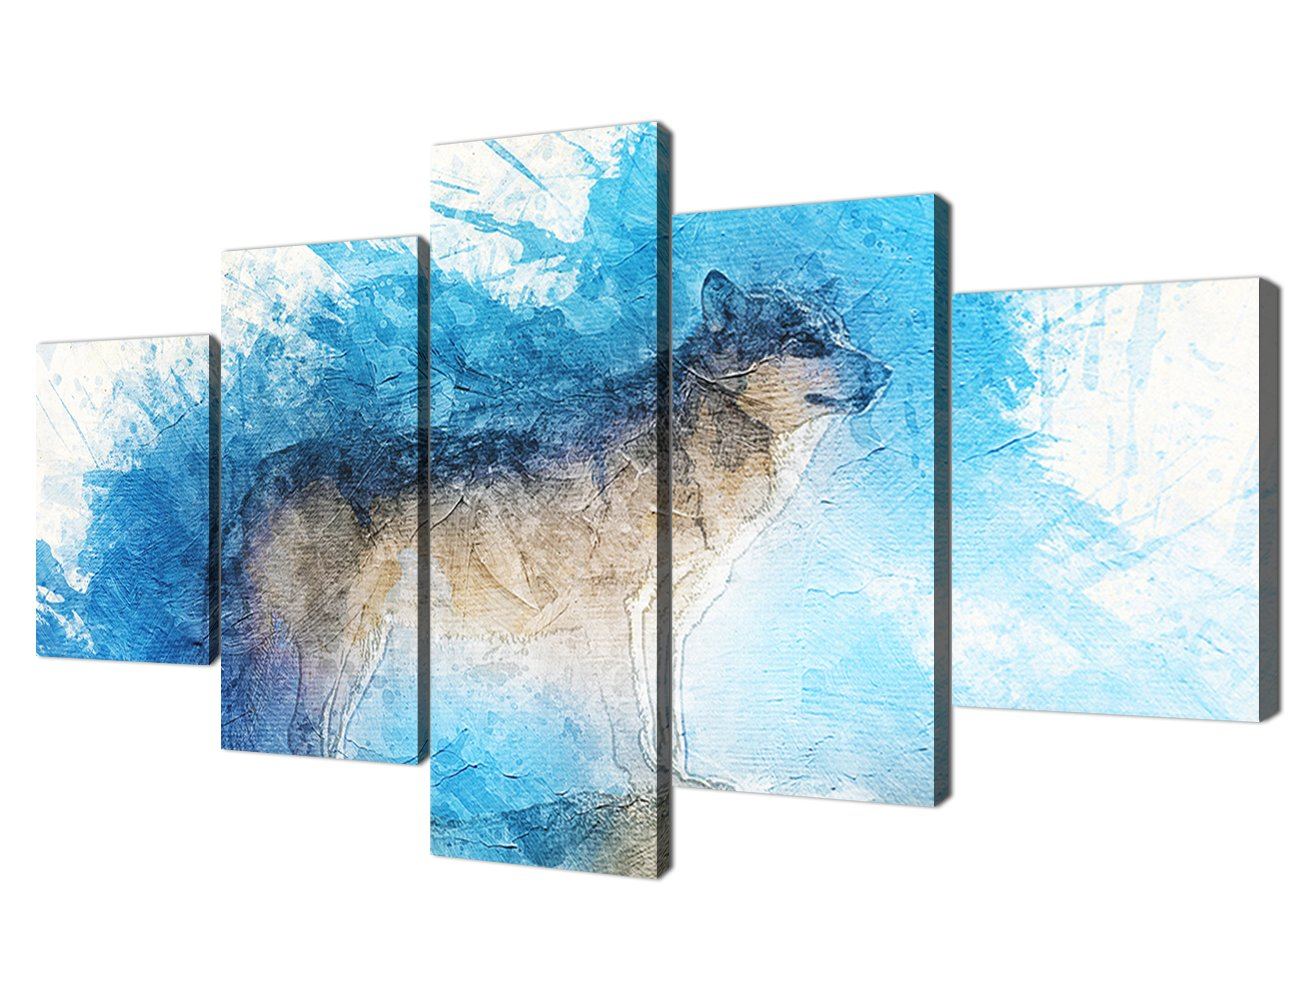 Yatsen Bridge Colorful Animal Painting On Canvas Prints and Poster Wolf Pictures Wall Art for Living room Home Decor Bedroom Wall Decoration Gifts Stretched By Wood Ready To Hang (60x32inch)